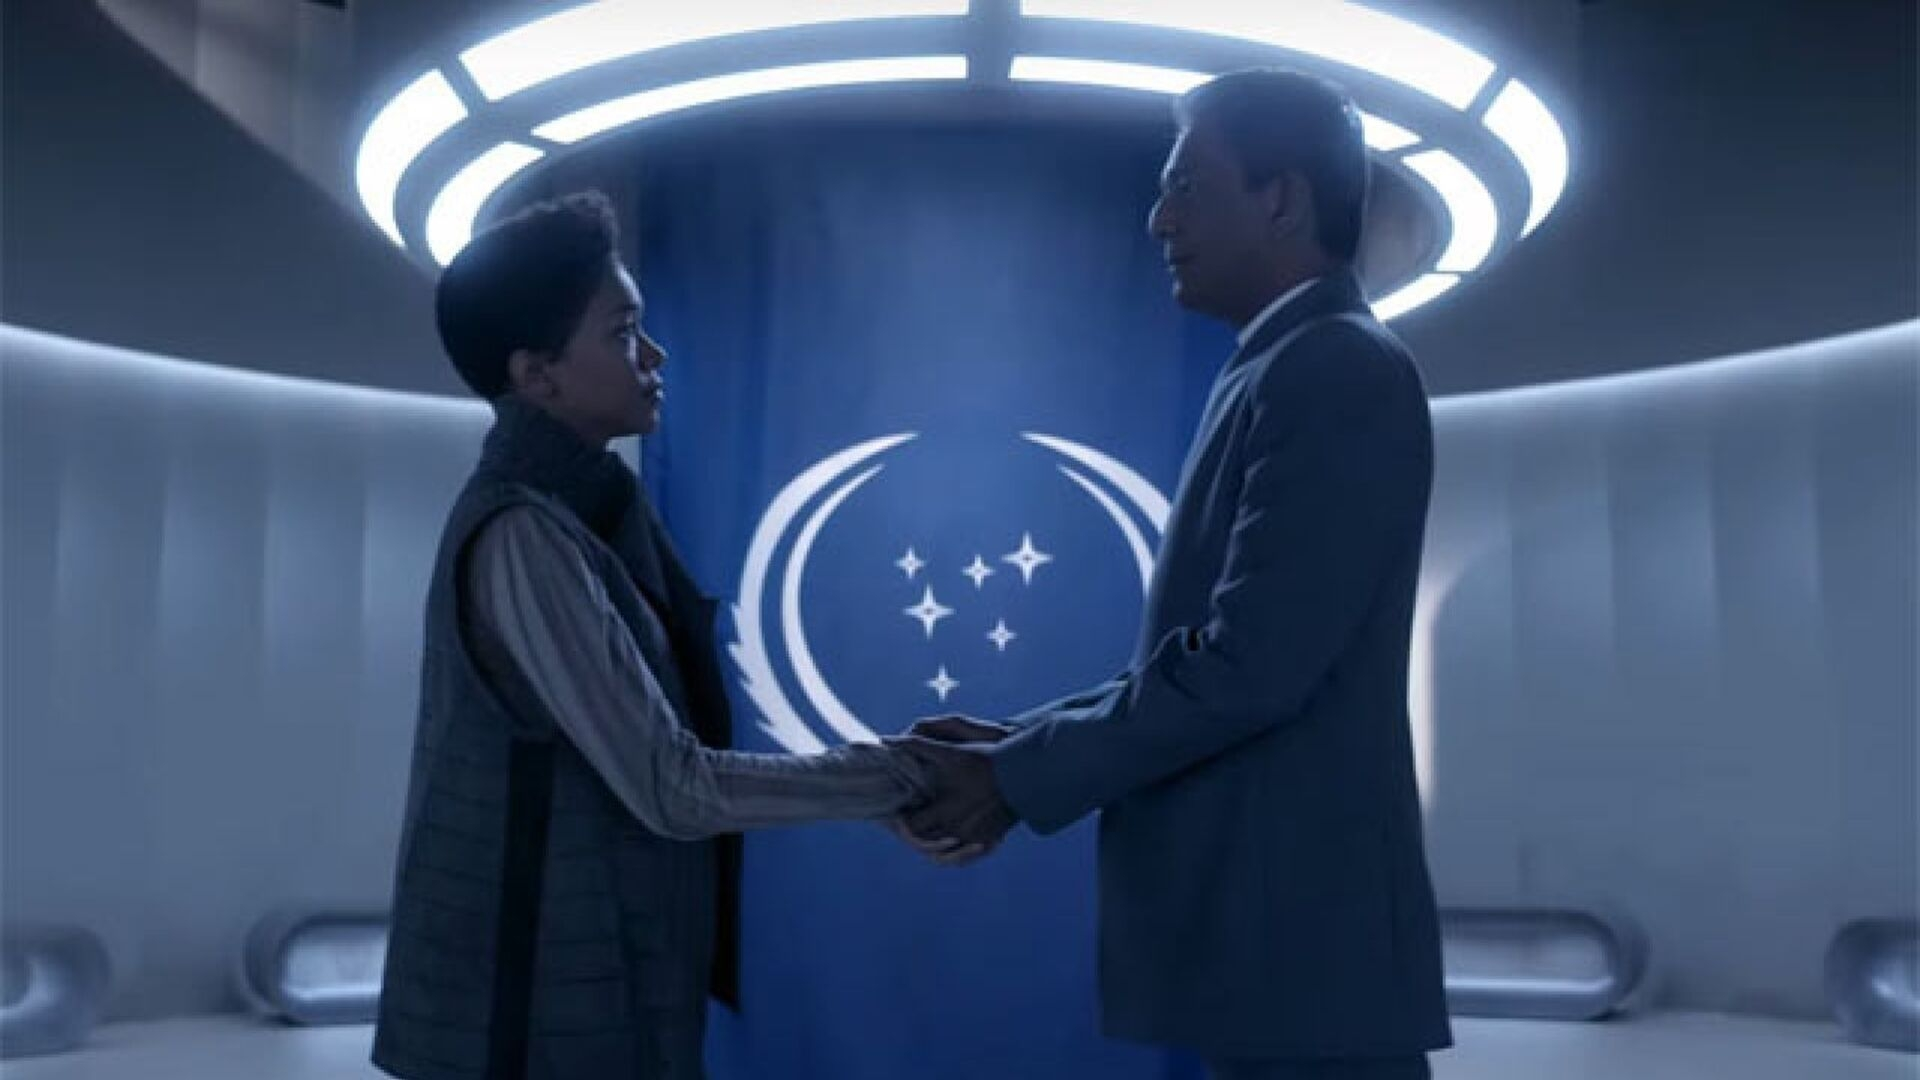 Adil Hussain Joins Cast of Season 3 of 'Star Trek: Discovery'